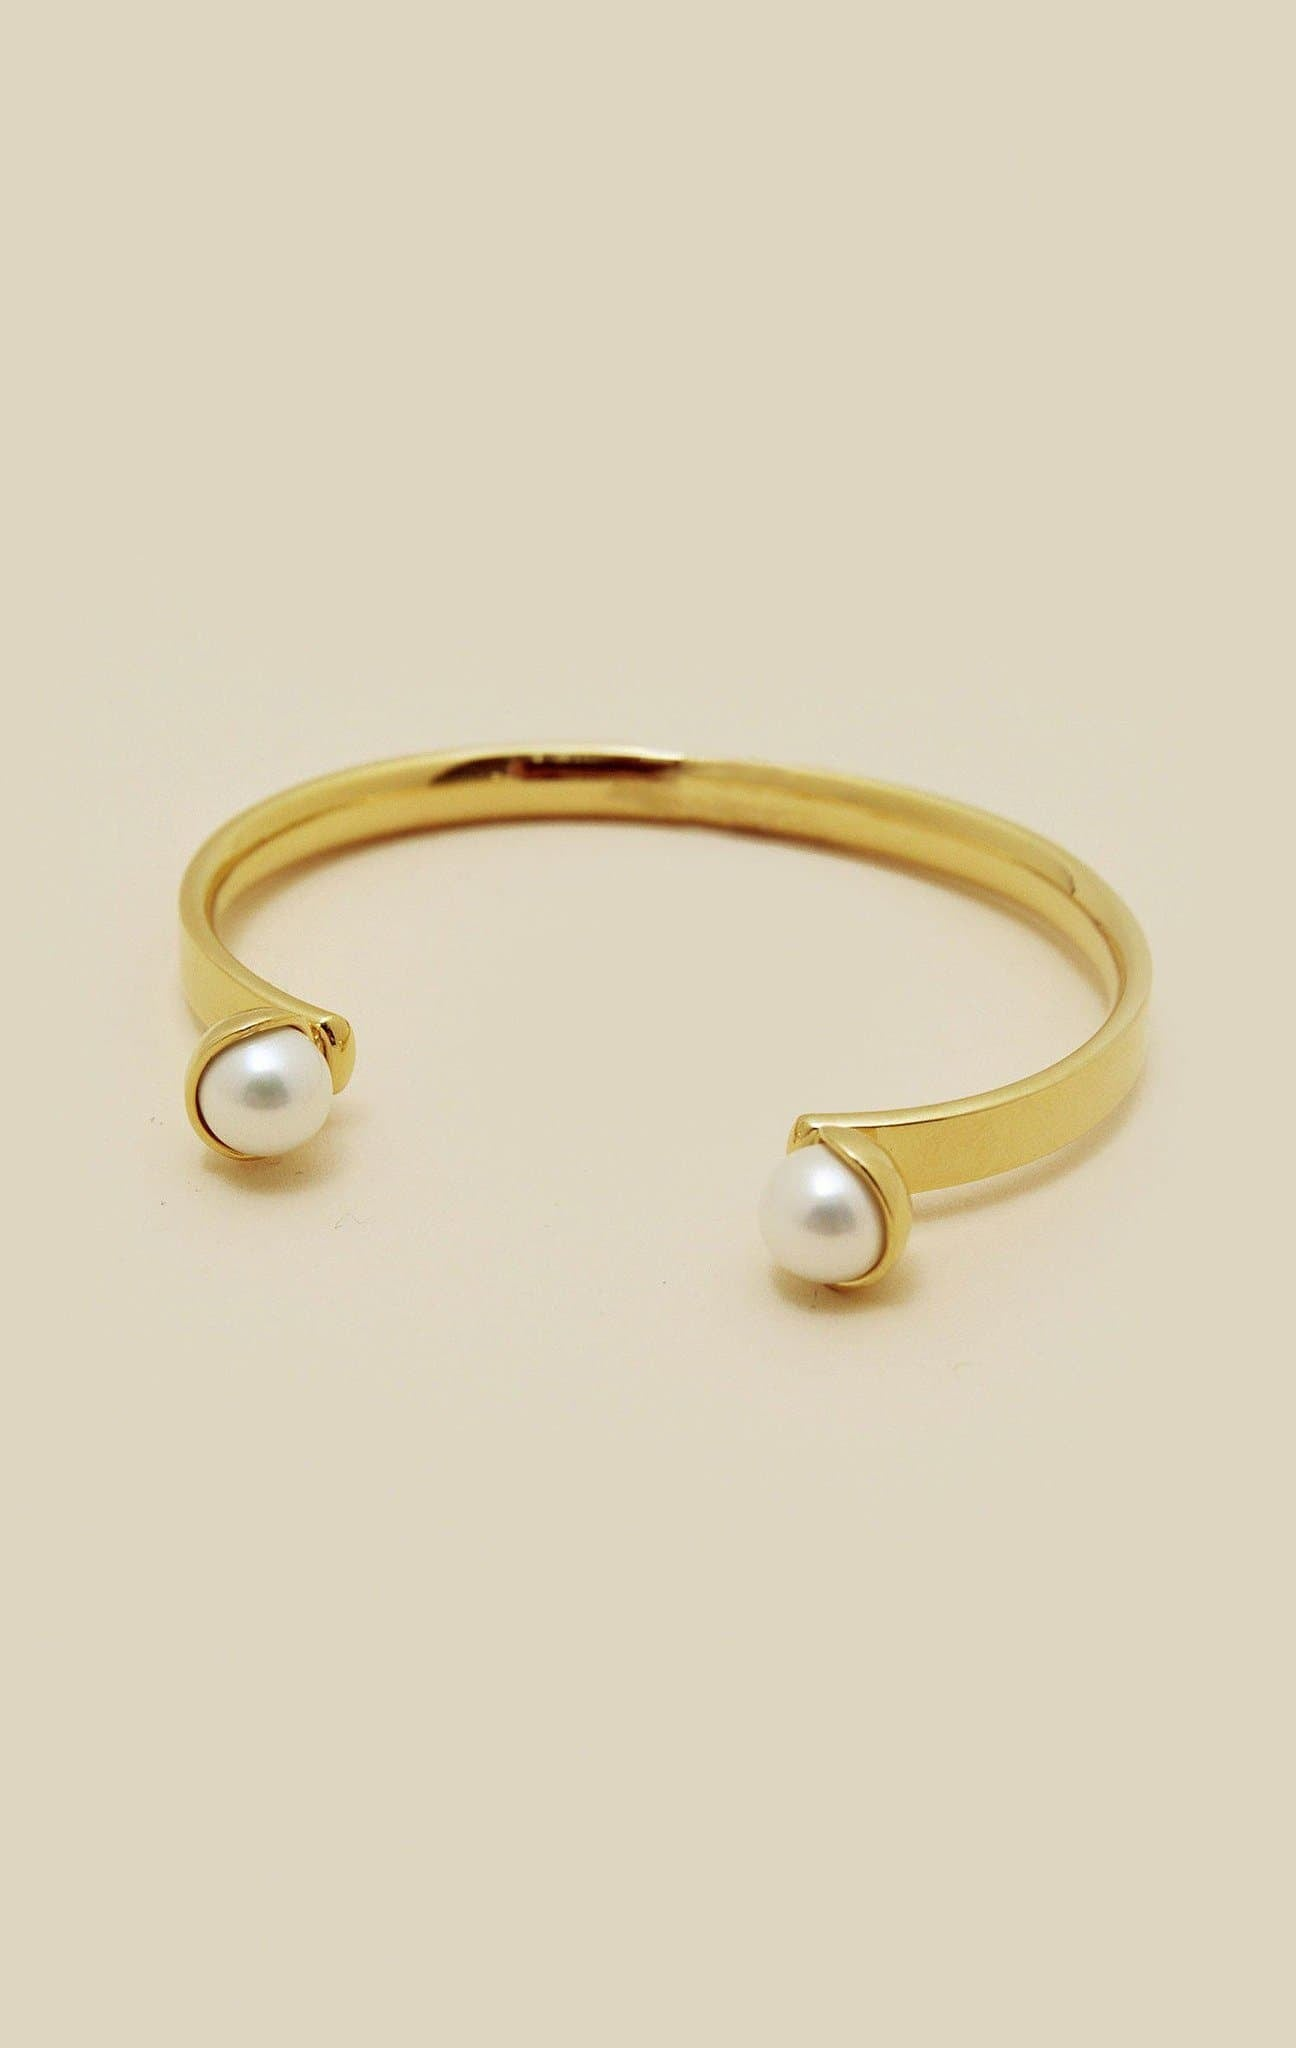 AVEC POM POM OPEN BANGLE - GOLD